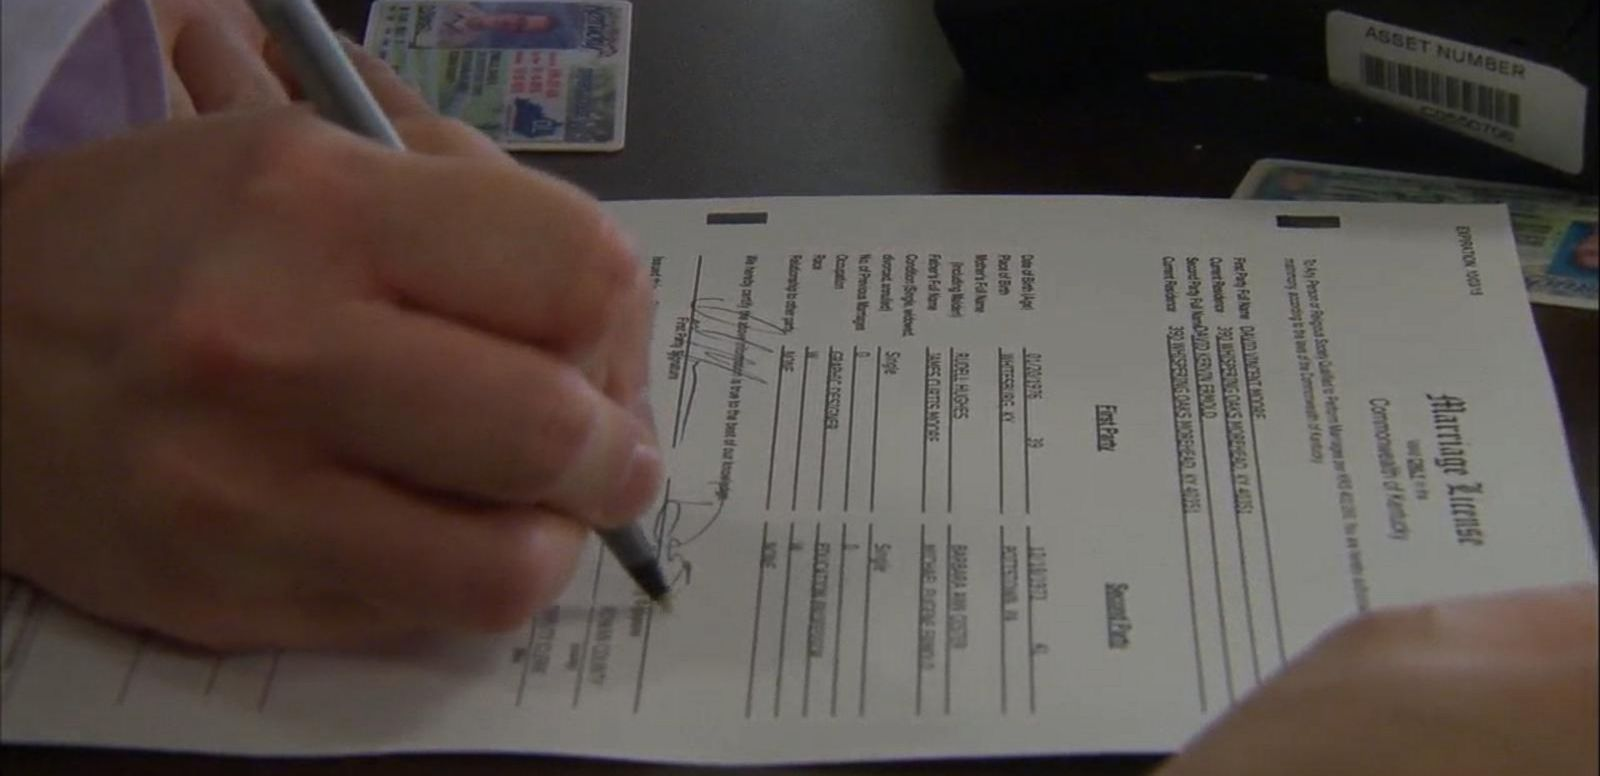 VIDEO: Kentucky County Clerk's Office Issues Marriage Licenses to Same-Sex Couples